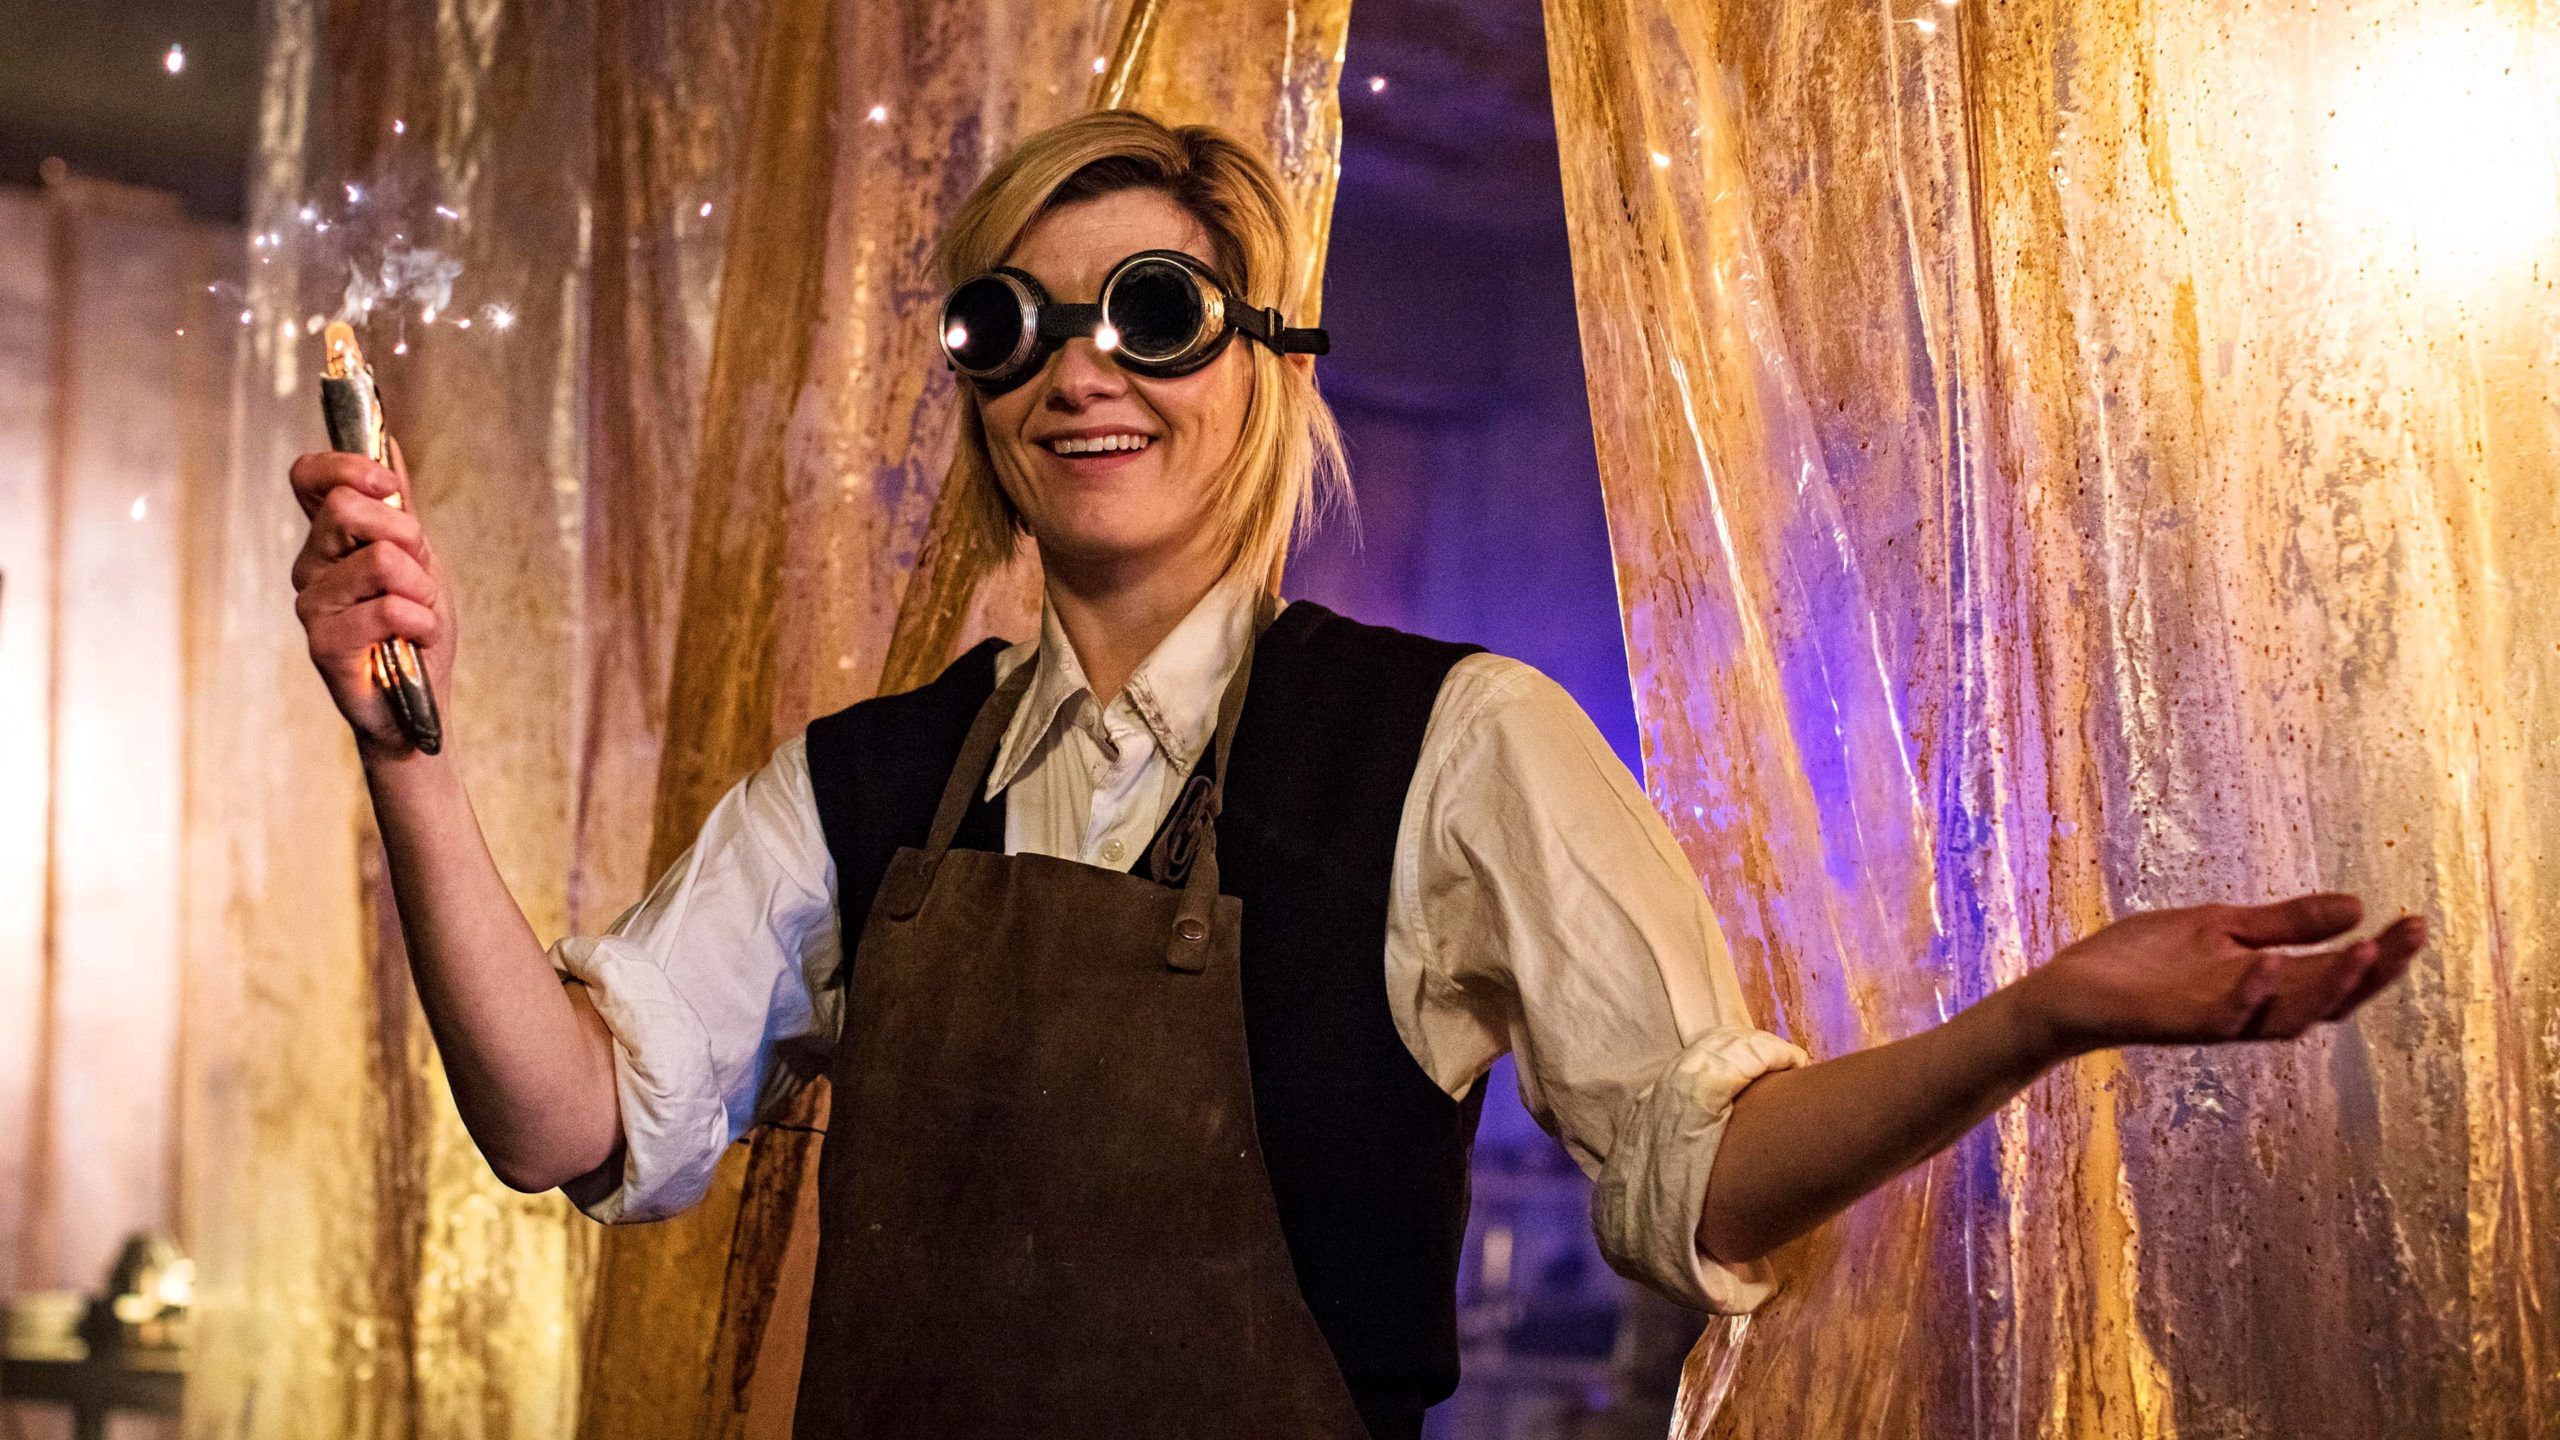 Ideologies in Doctor Who: Is Jodie Whittaker's Era Different to the Past?